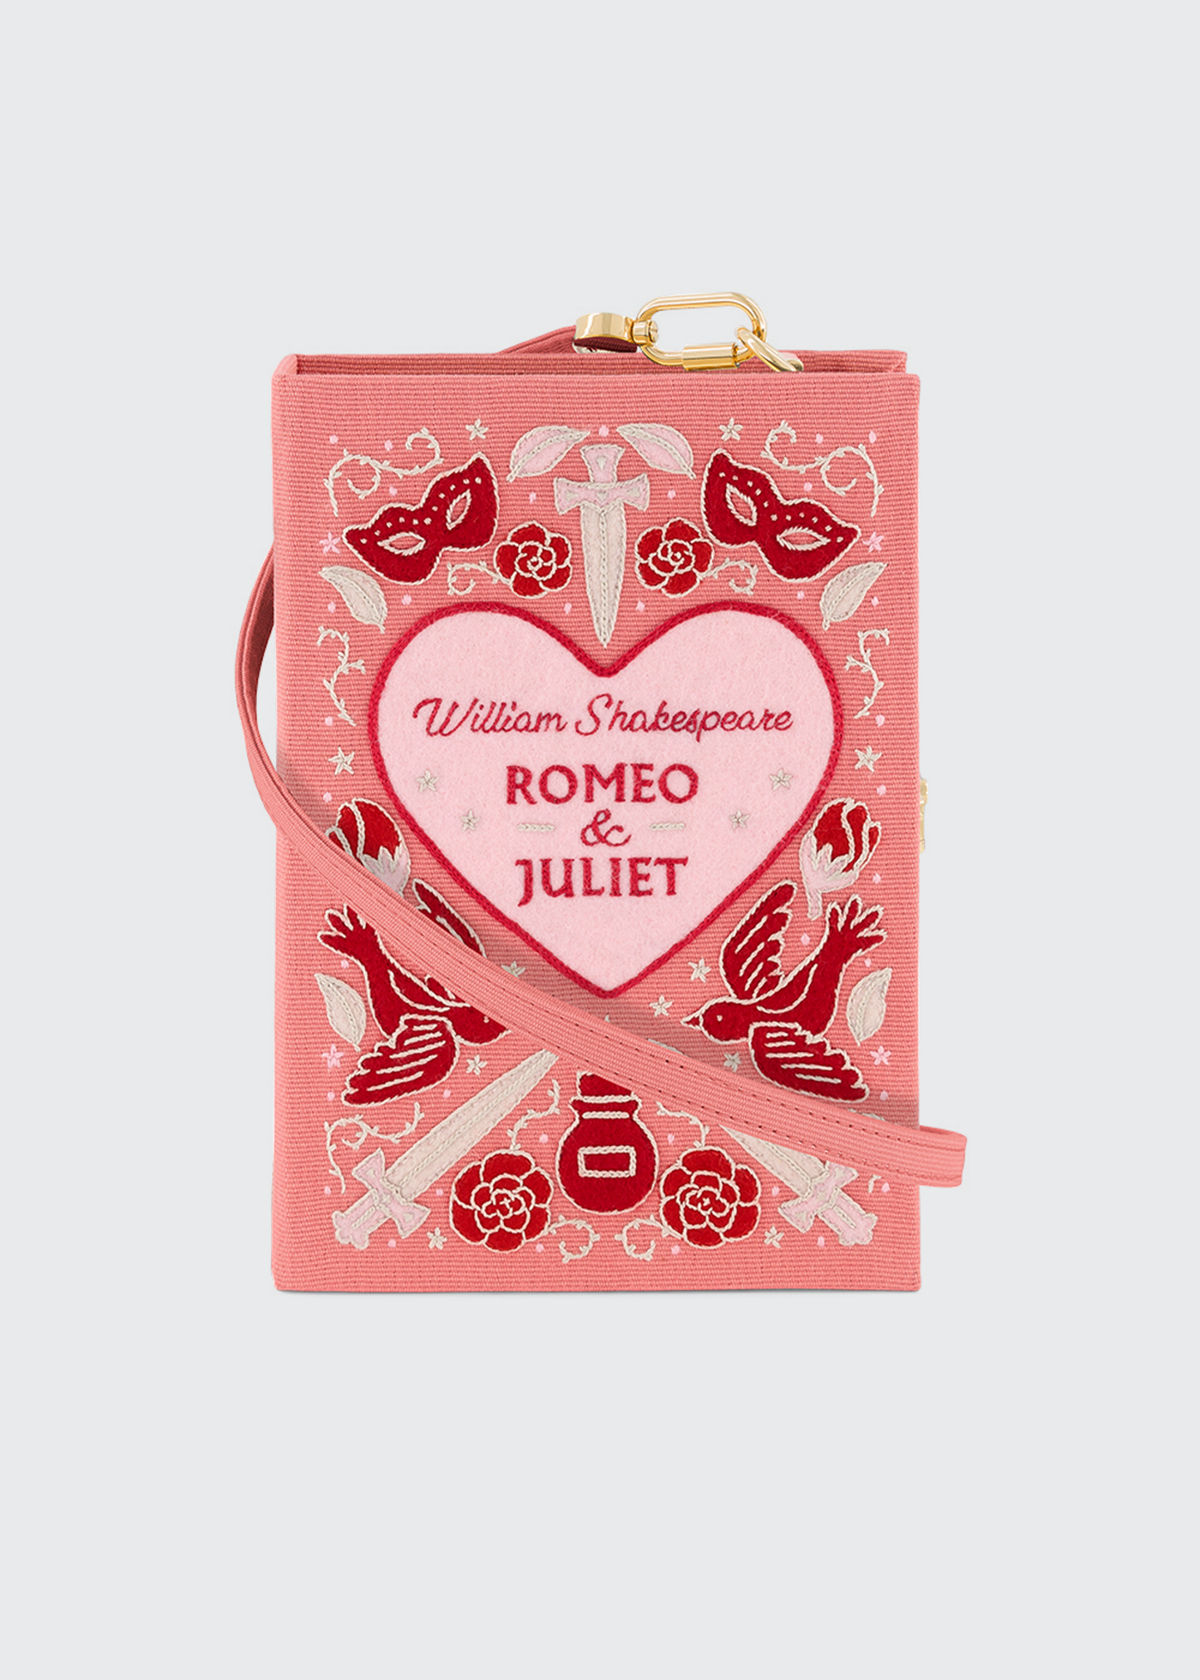 Olympia Le-Tan ROMEO AND JULIET BOOK CLUTCH BAG